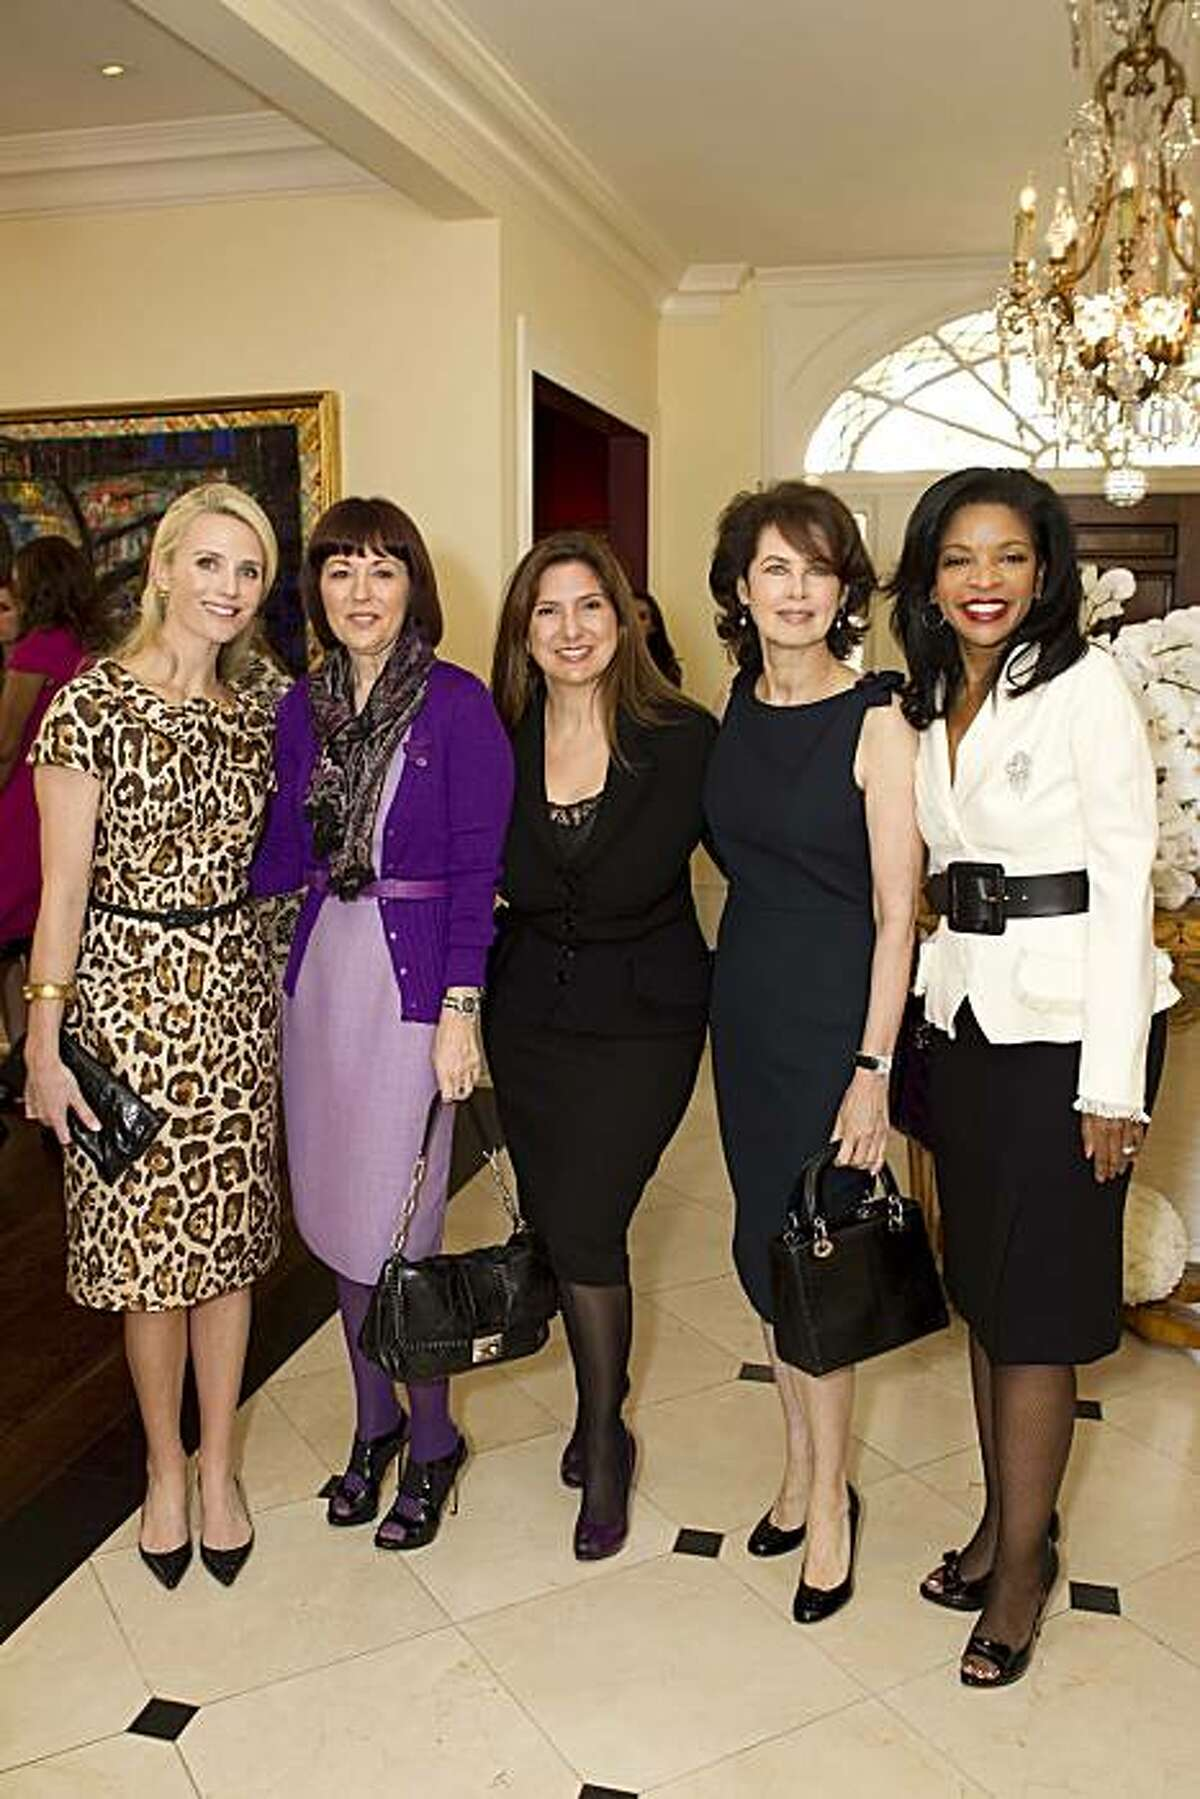 Select pieces from the archives of Christian Dior in Paris were shipped and put on display at the home of Pamela Joyner at a luncheon to introduce stylish San Francisco women to Dior's history, and its spring 2010 collection of clothing. From left to right: Jennifer Siebel Newsom, Pamela Baxter, Regina Kulik Scully, Dayle Haddon, Pamela Joyner Jennifer Siebel Newsom, Pamela Baxter, Regina Kulik Scully, Dayle Haddon, Pamela Joyner